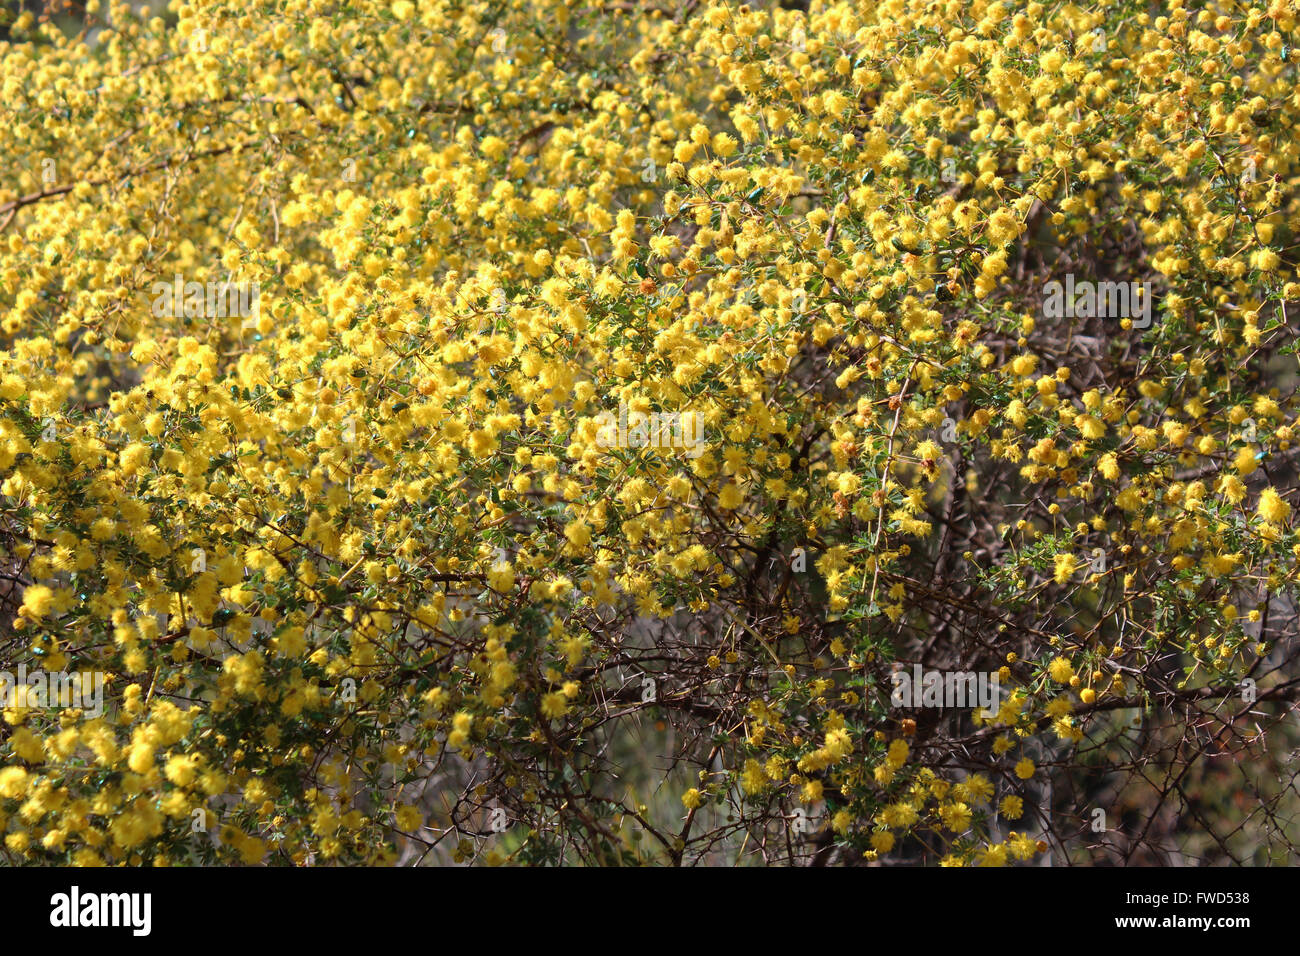 Prickly Shrub Stock Photos Prickly Shrub Stock Images Alamy